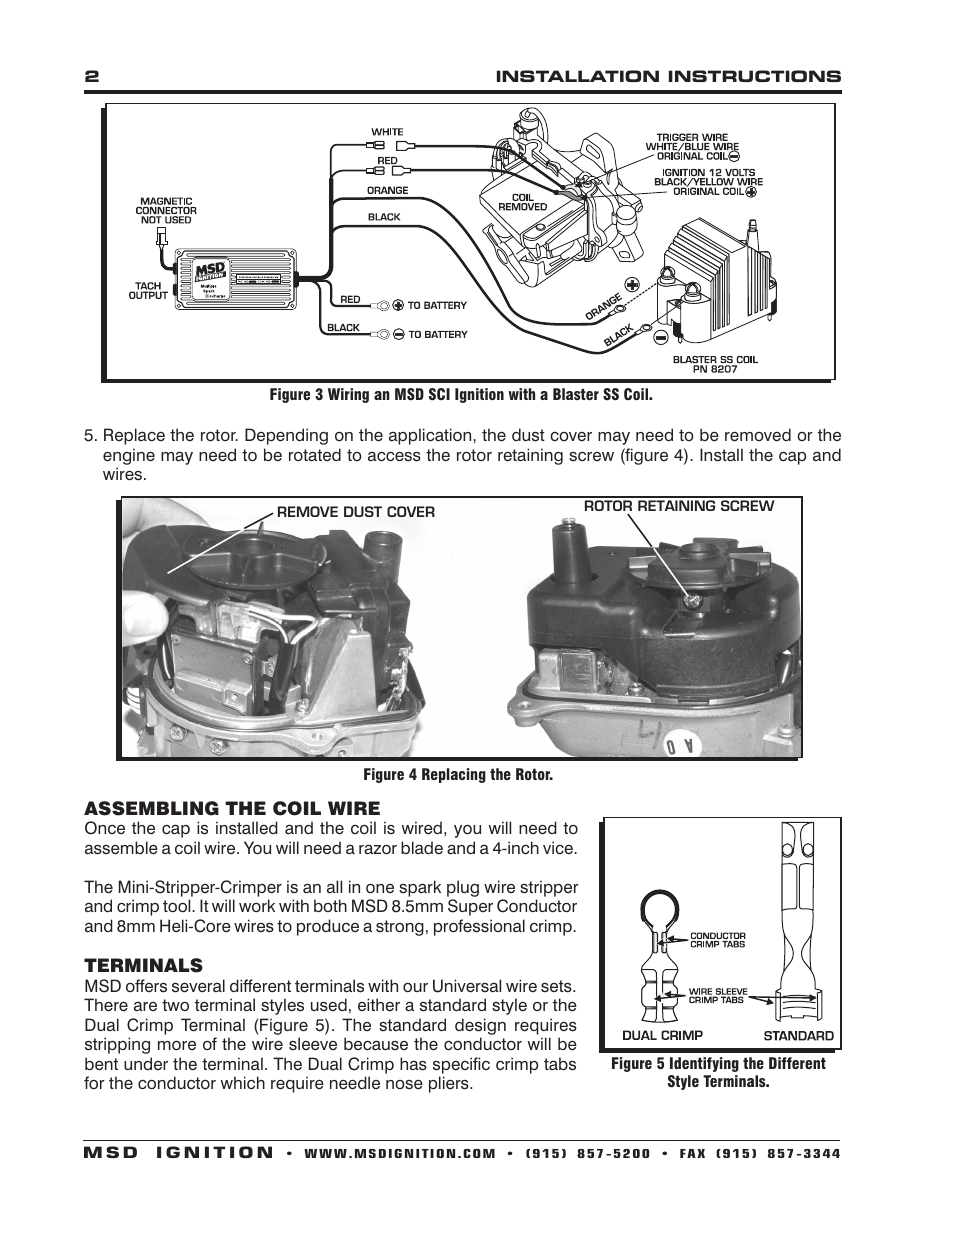 Msd Wiring Diagram For Honda Prelude Cadillac DeVille